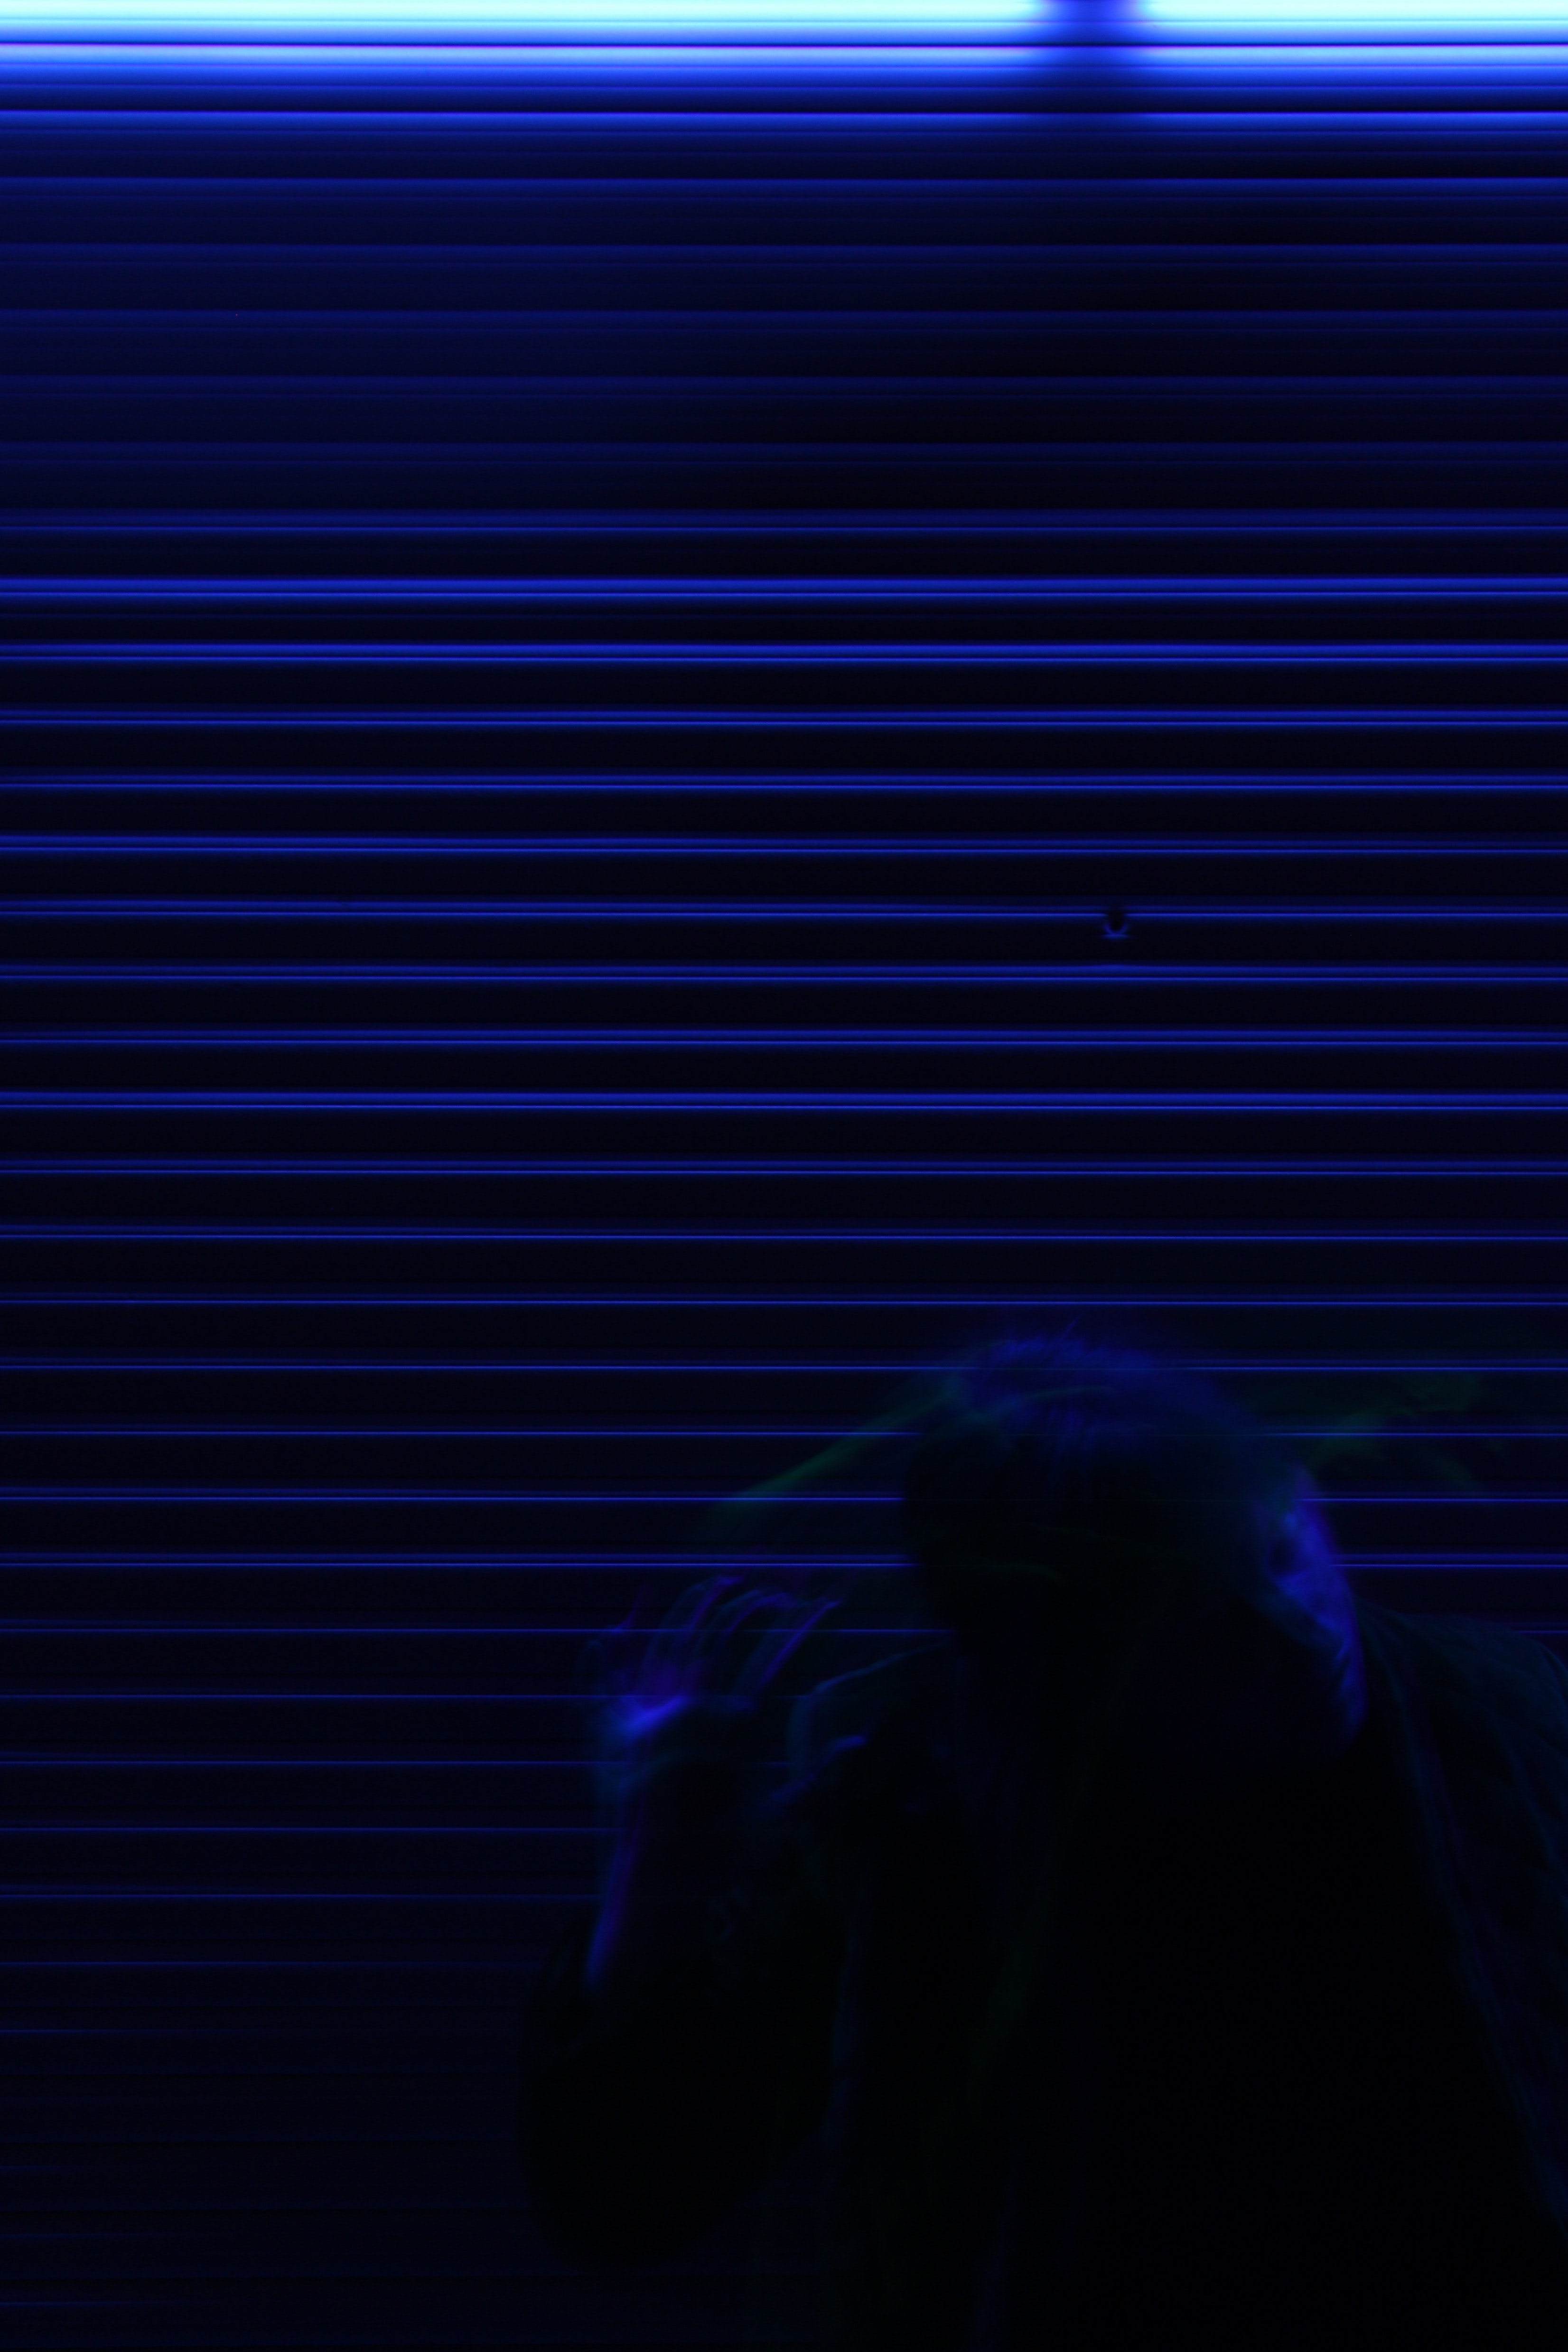 A creepy picture of a person standing near a closed blue garage door.